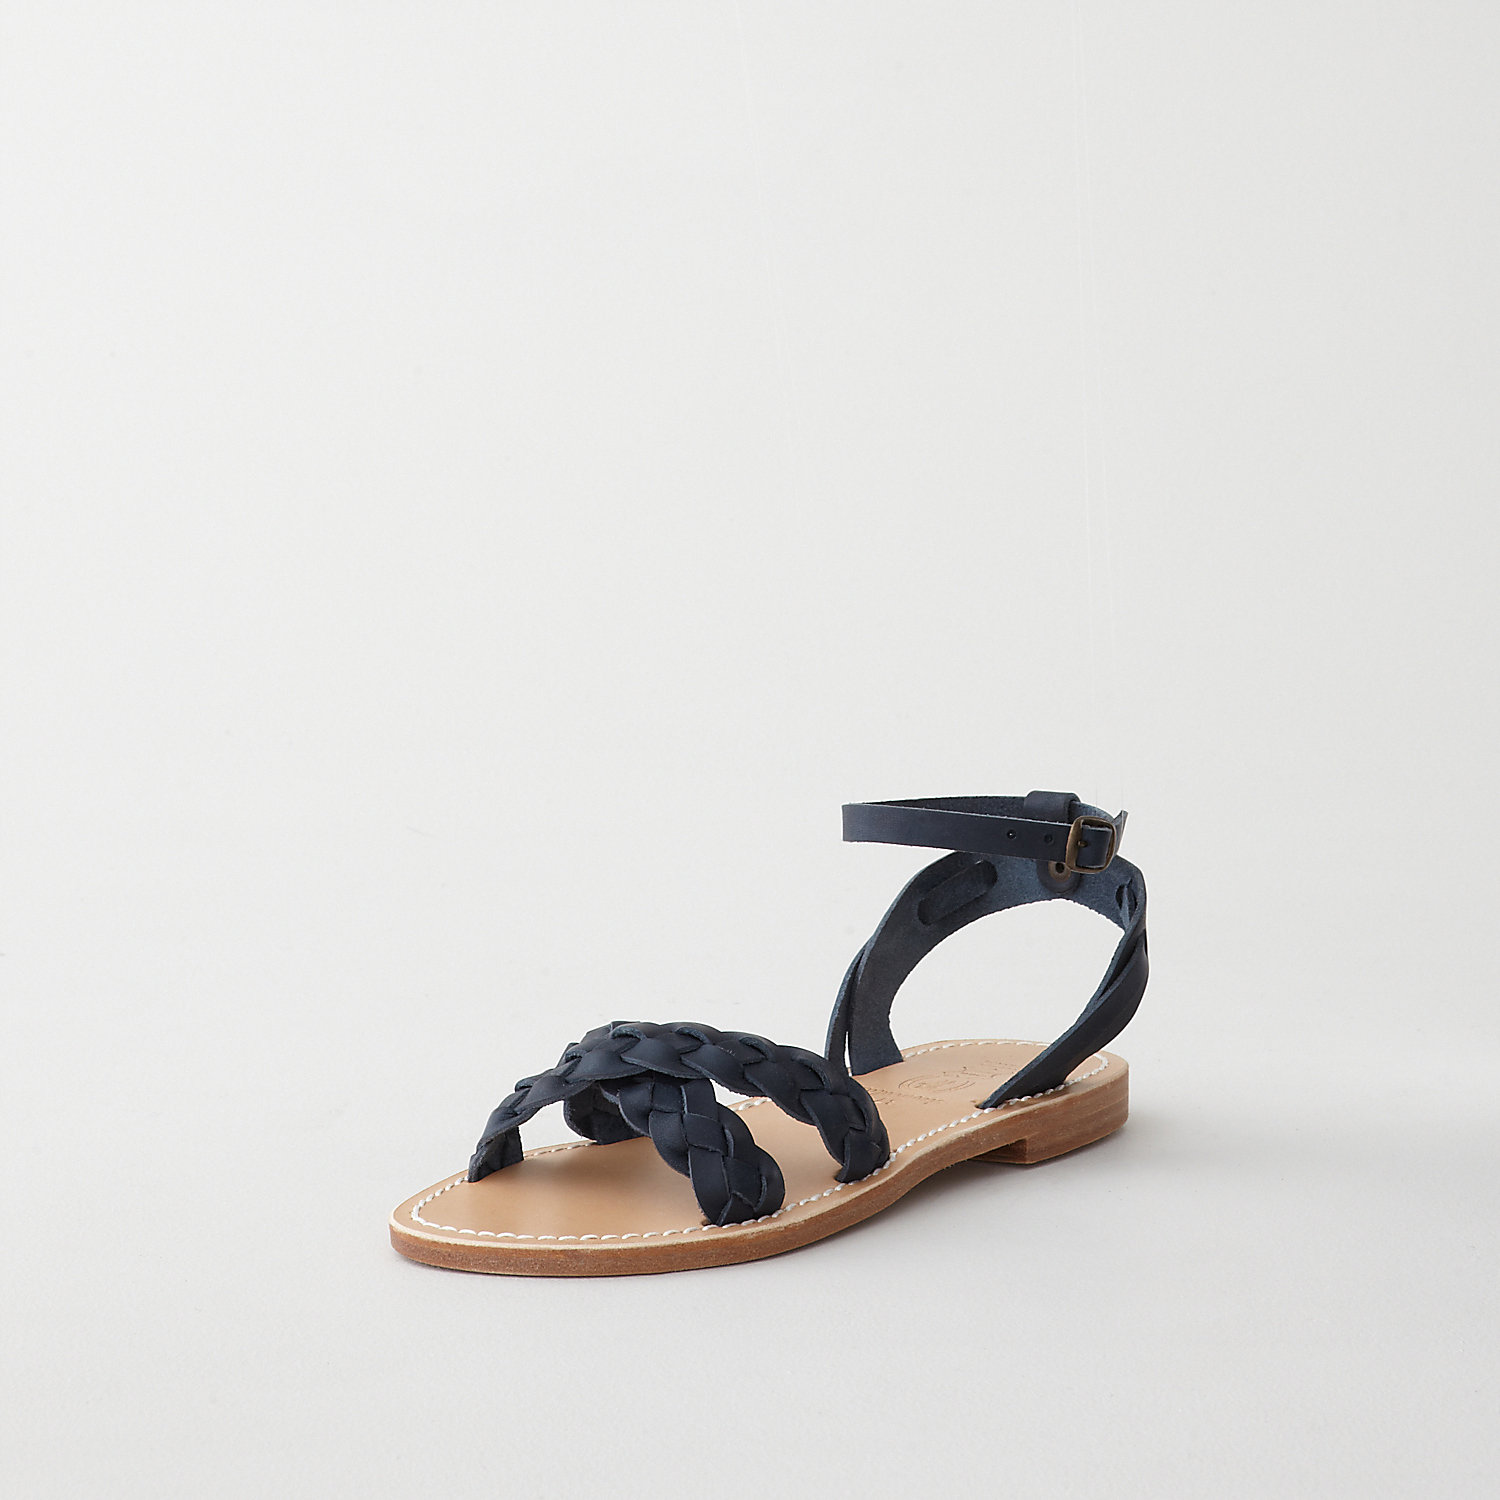 CRISS CROSS LEATHER SANDAL